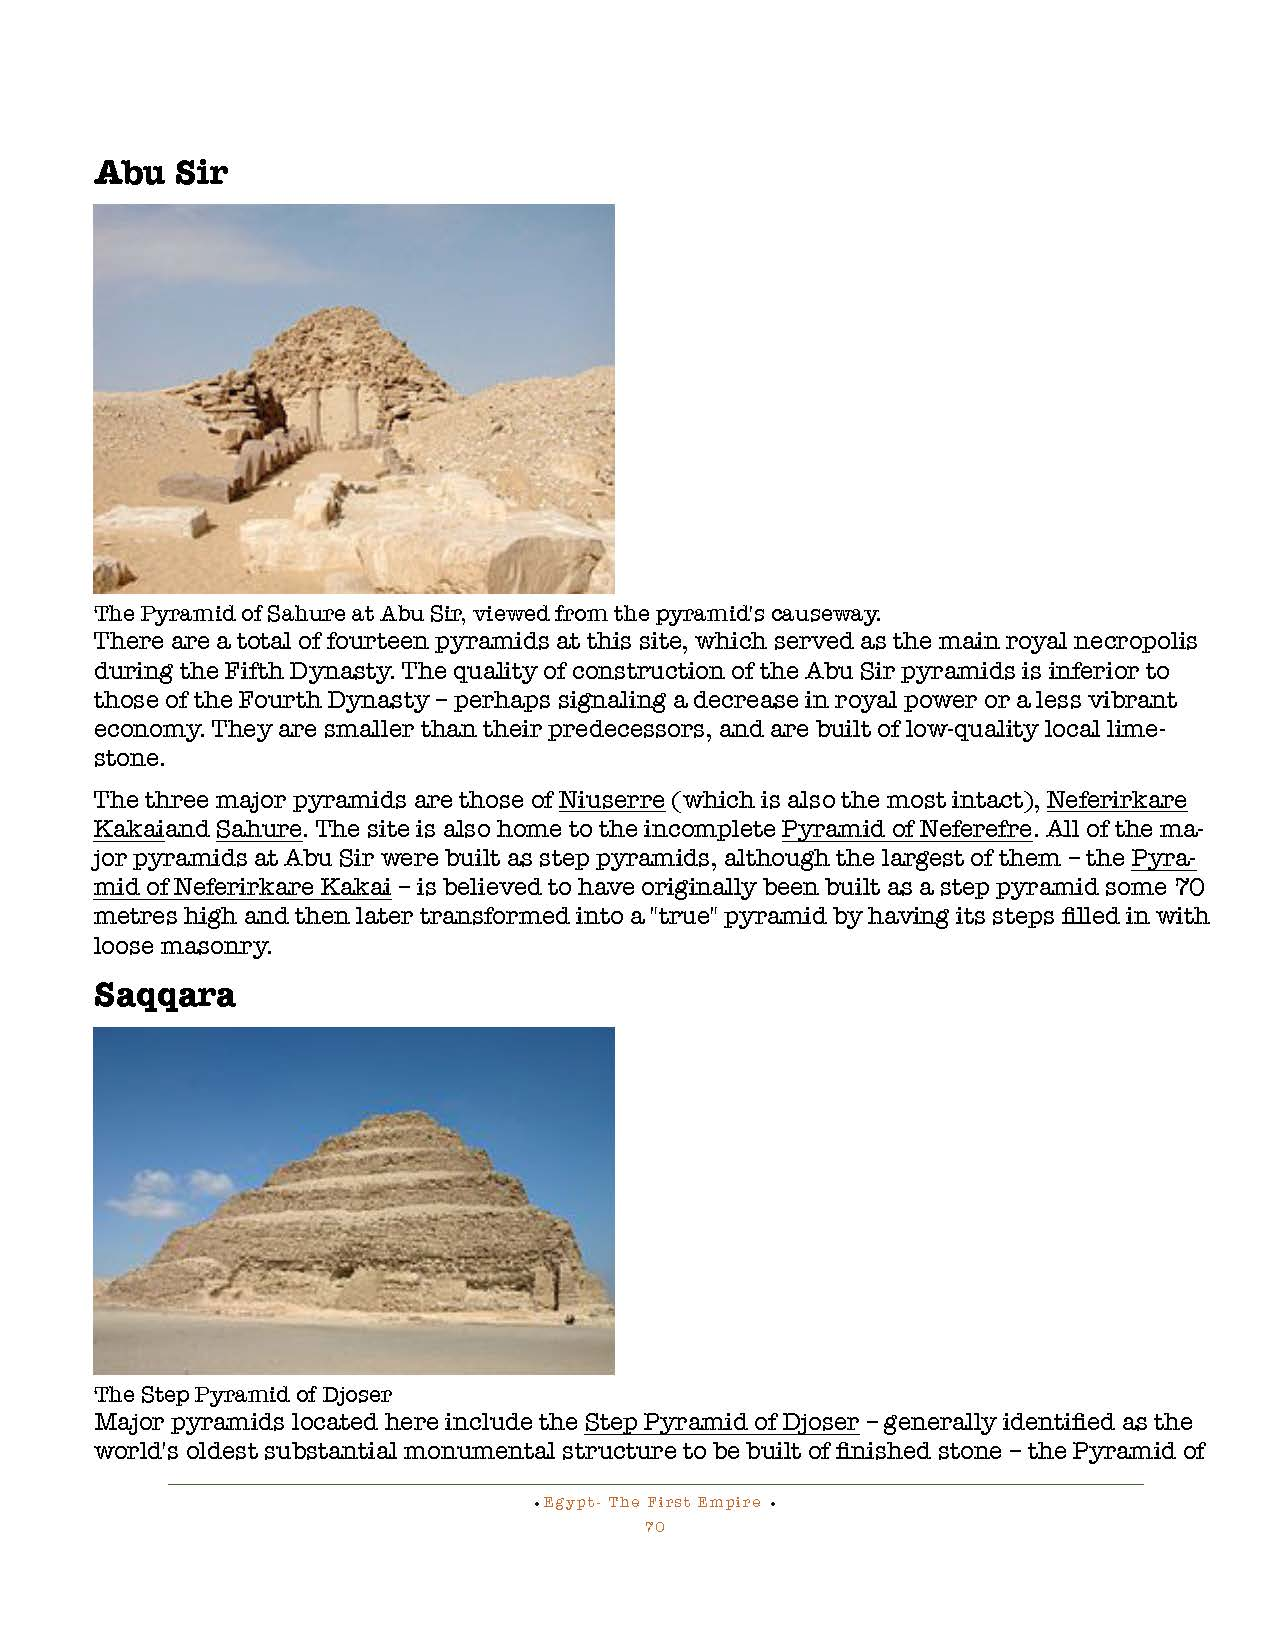 HOCE- Egypt  (First Empire) Notes_Page_070.jpg